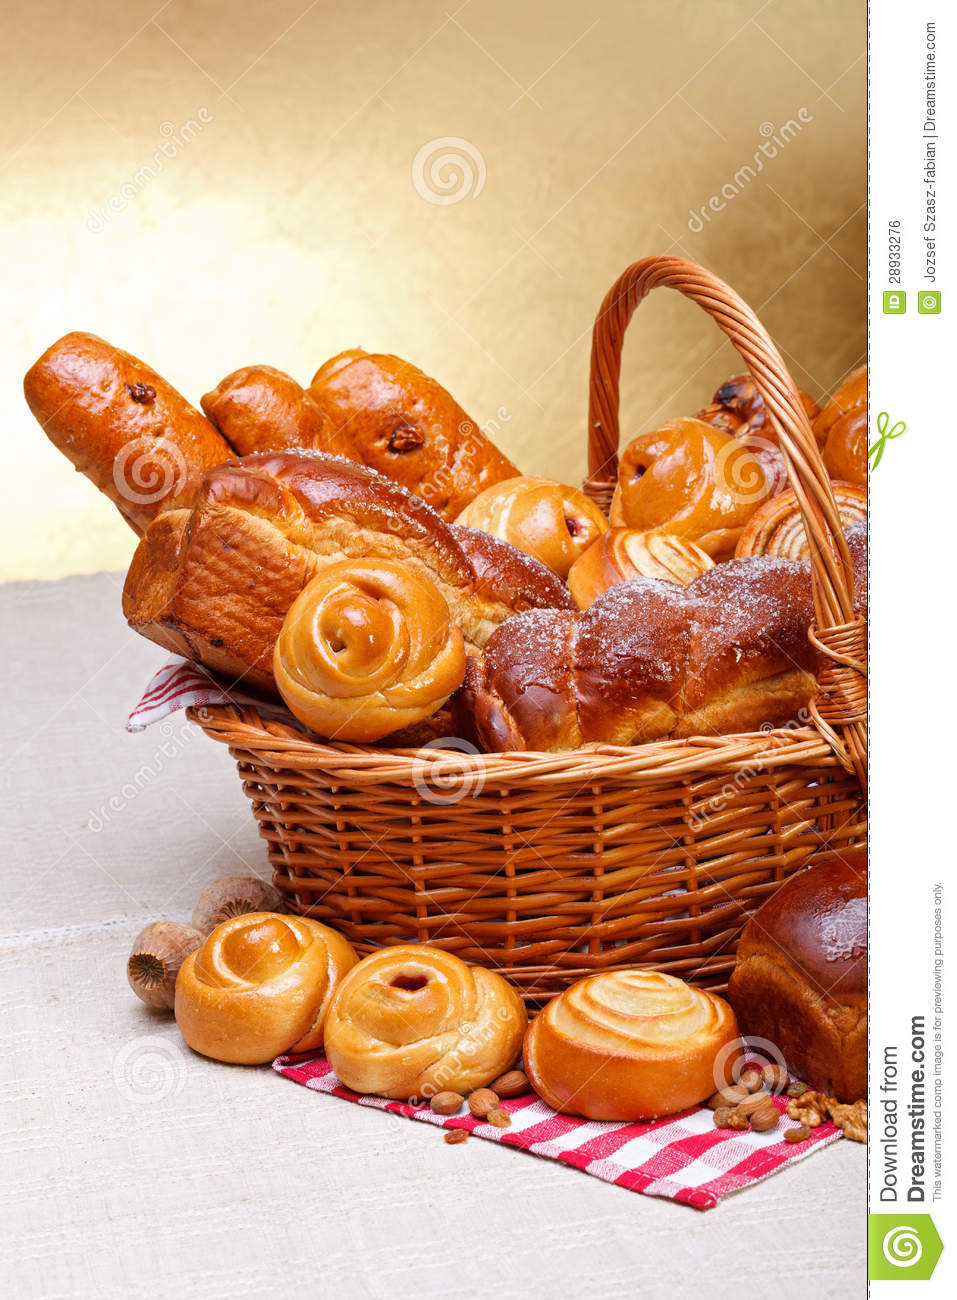 Sweet Bakery Products In Basket Stock Photo Image 28933276